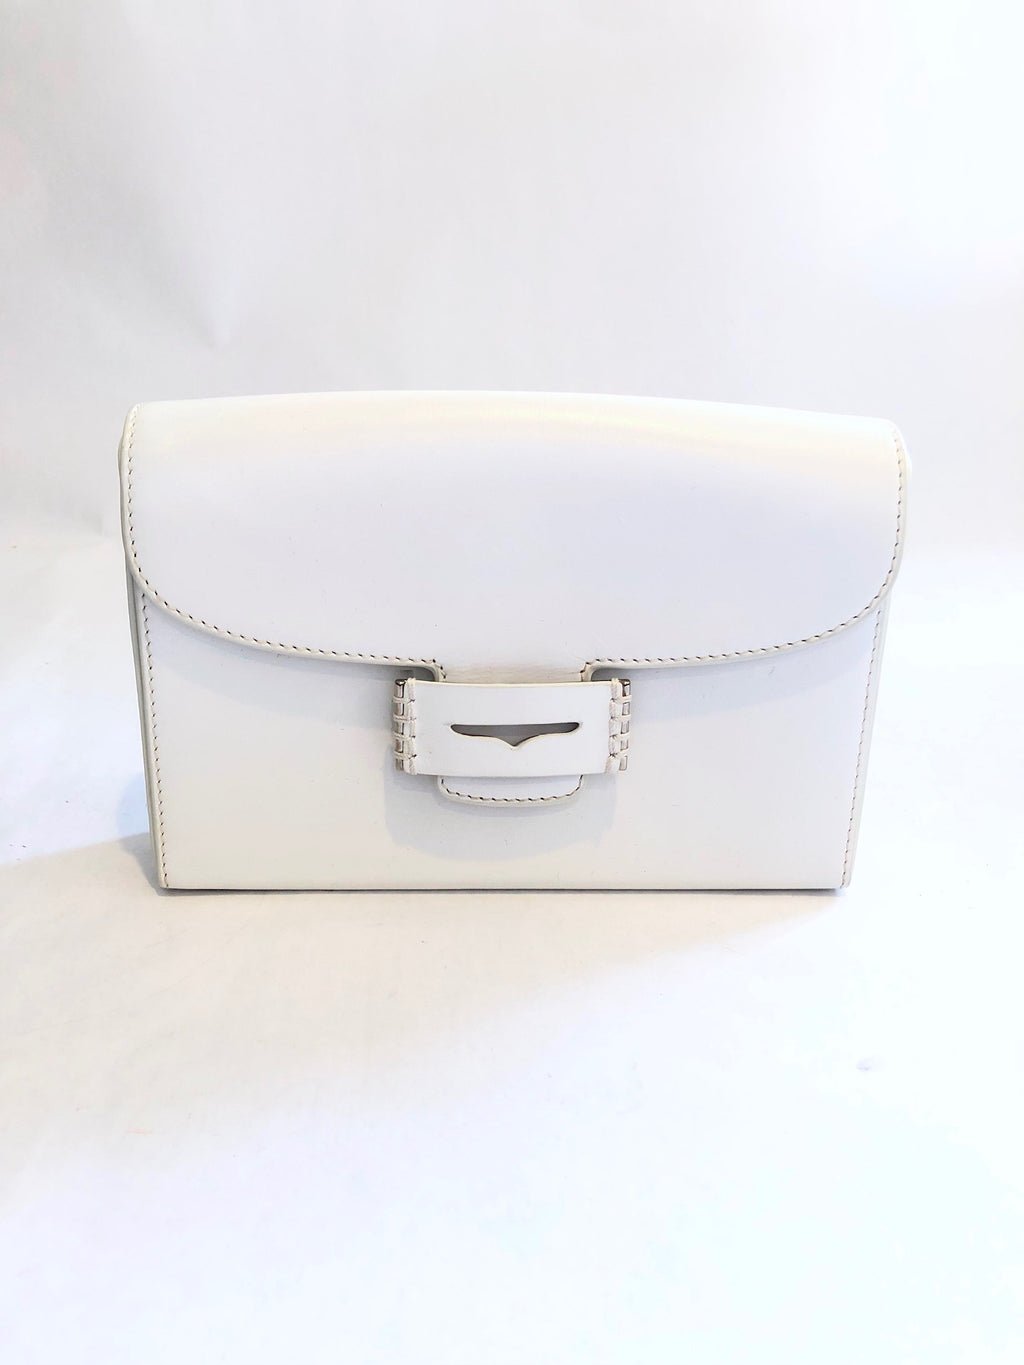 Myriam Schaefer White Leather Box Clutch